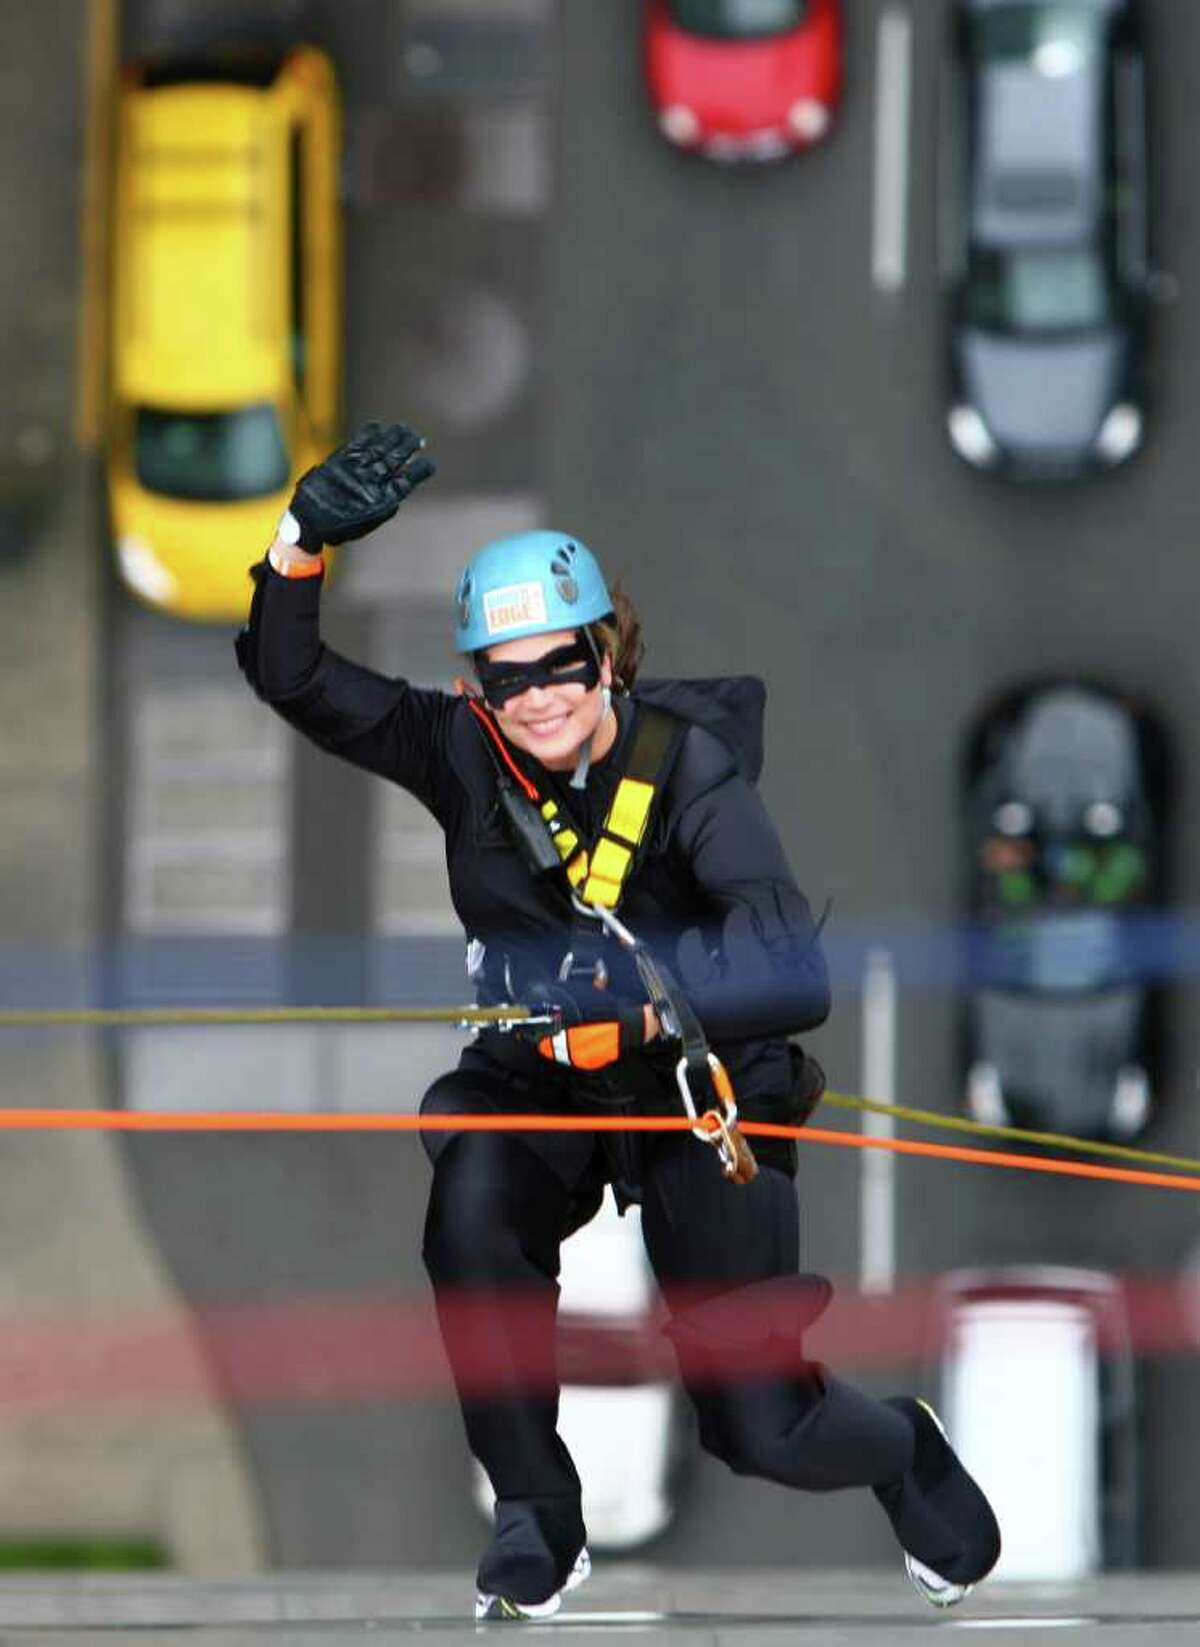 Danielle Burd, dressed as Batwoman, descends the 514-foot tall building.